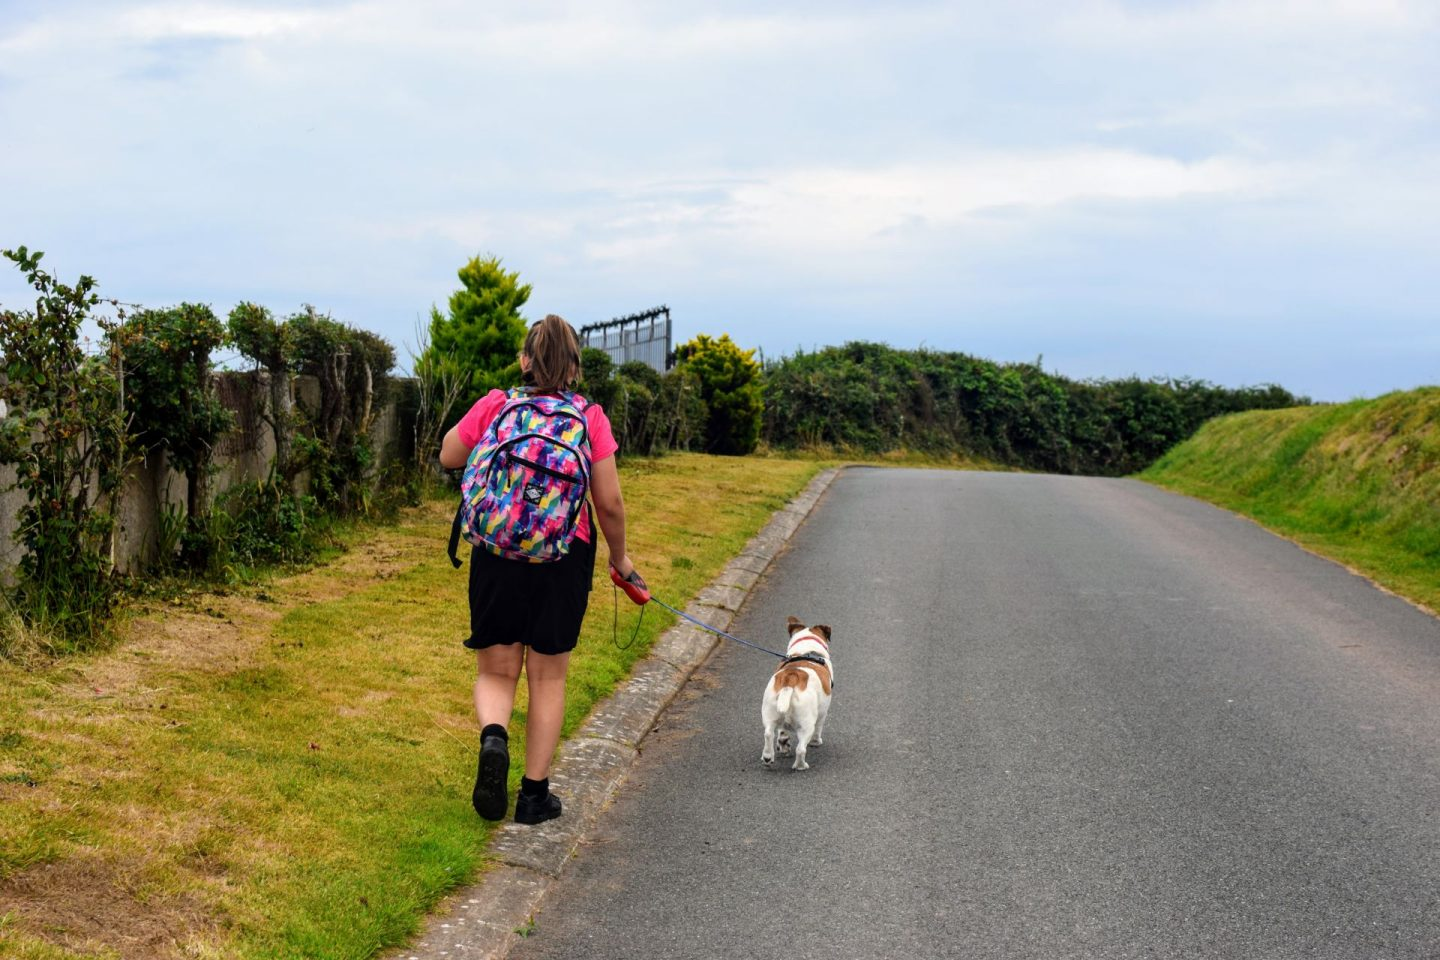 , The Day we Went to Freshwater East and Sid Came to Live With Us